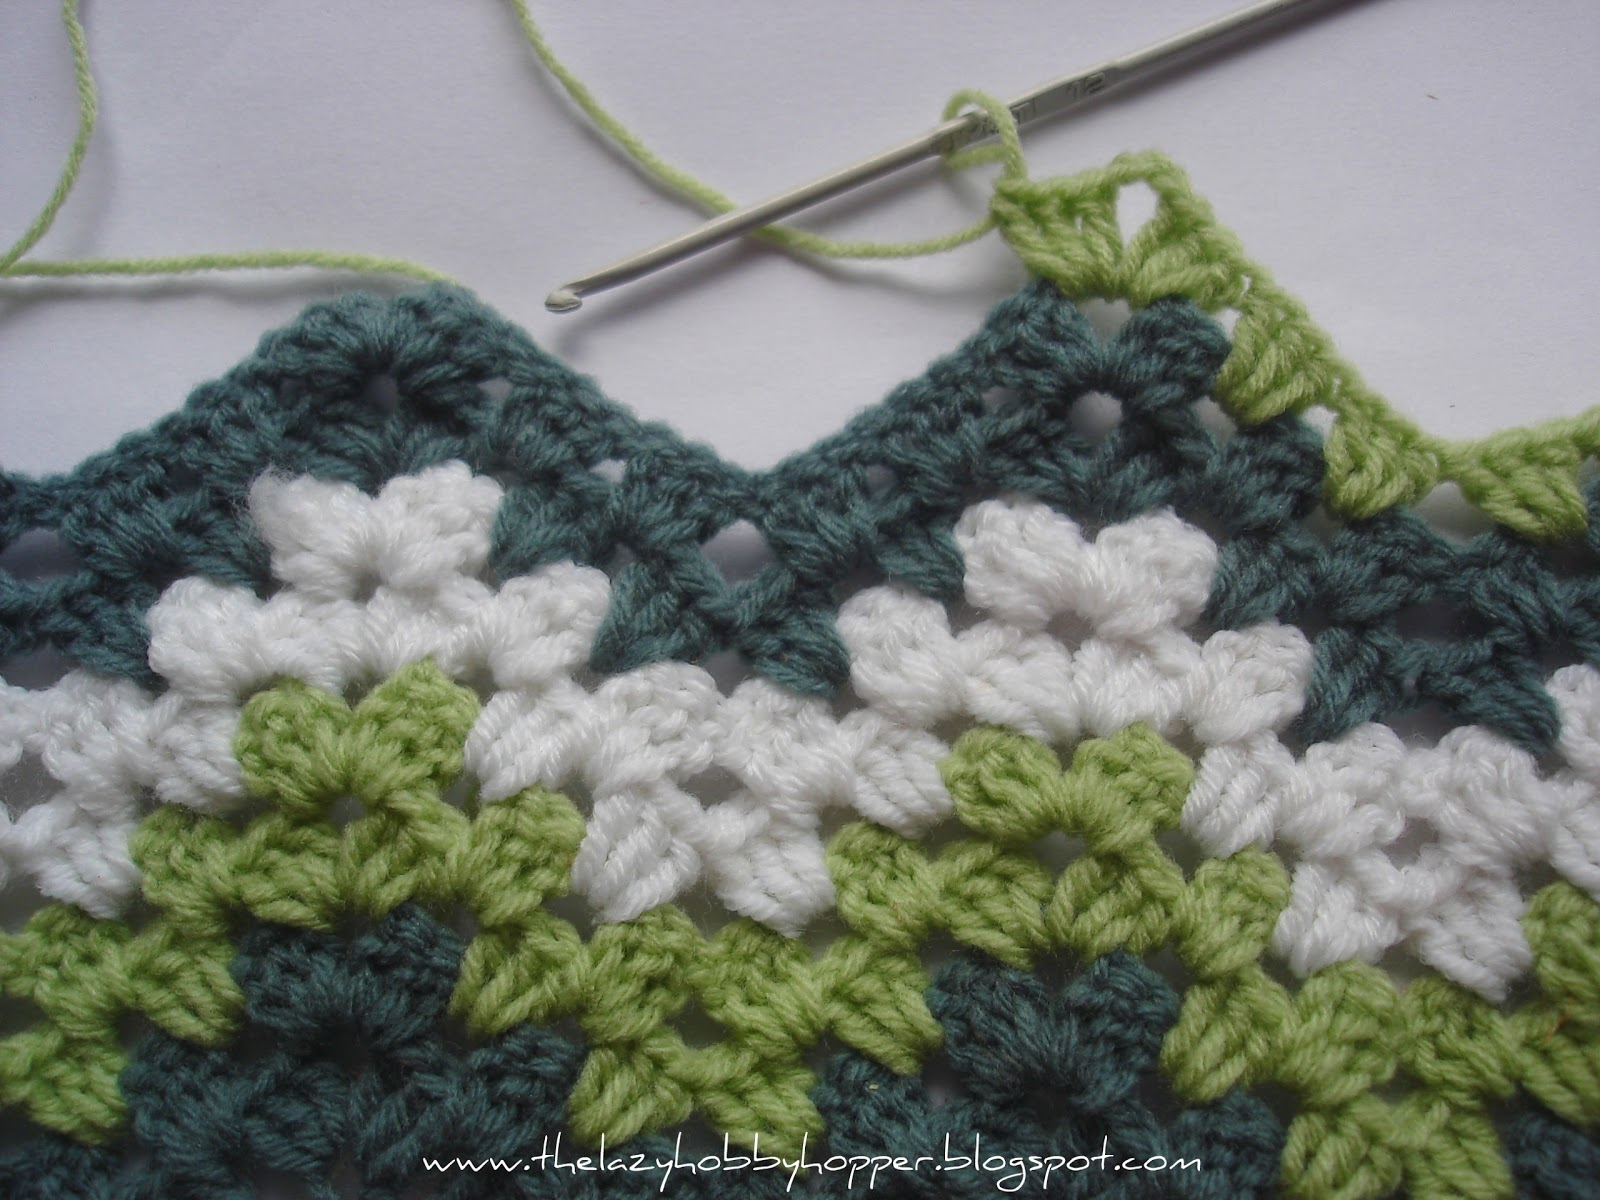 How To Crochet : The Lazy Hobbyhopper: How to crochet granny ripple